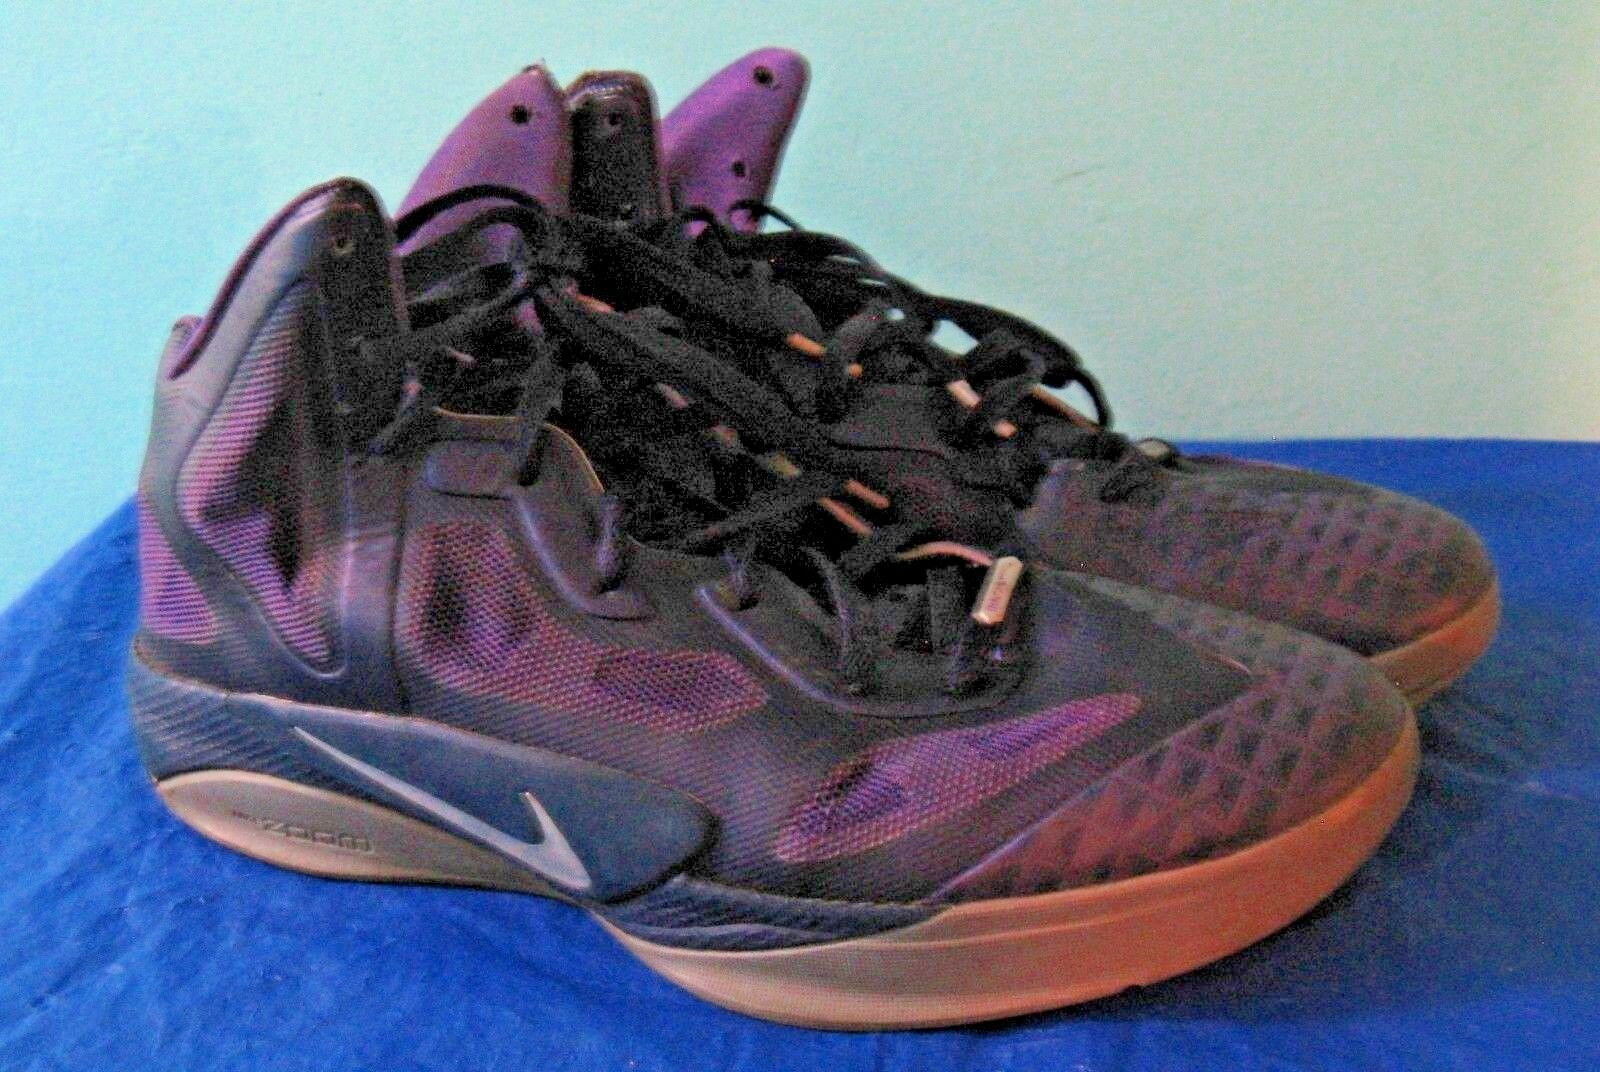 650a8783d5b5 Nike Air Zoom Hyperfuse 469757-500 Purple Gray Basketball Basketball  Basketball Shoes (Size 12) e80f2f